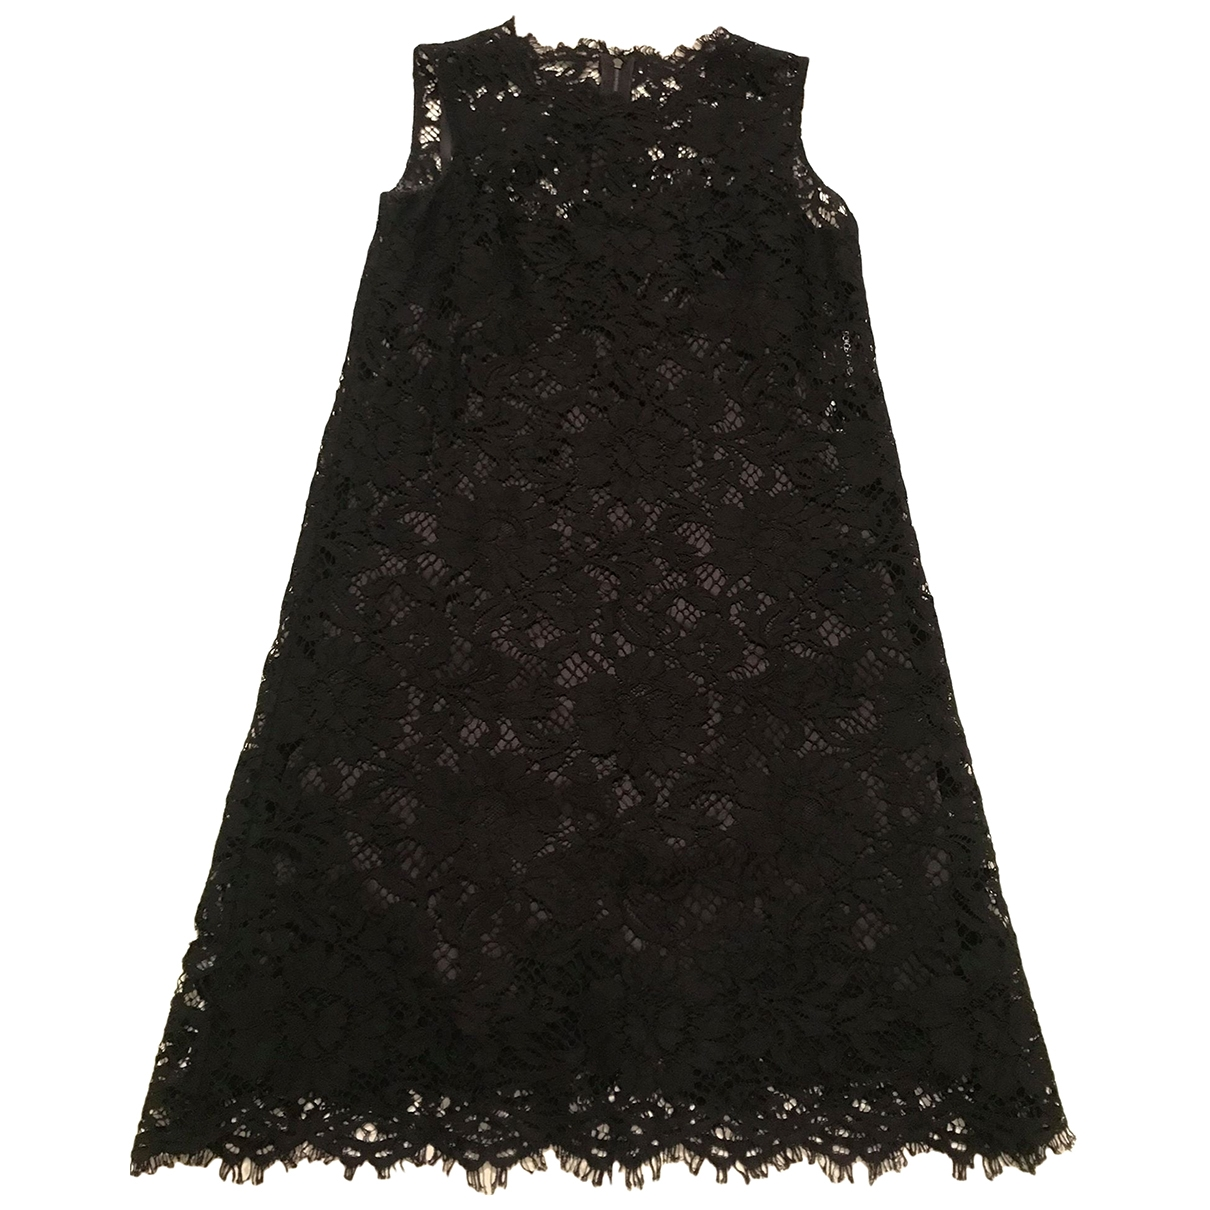 Dolce & Gabbana \N Black Lace dress for Women 36 IT